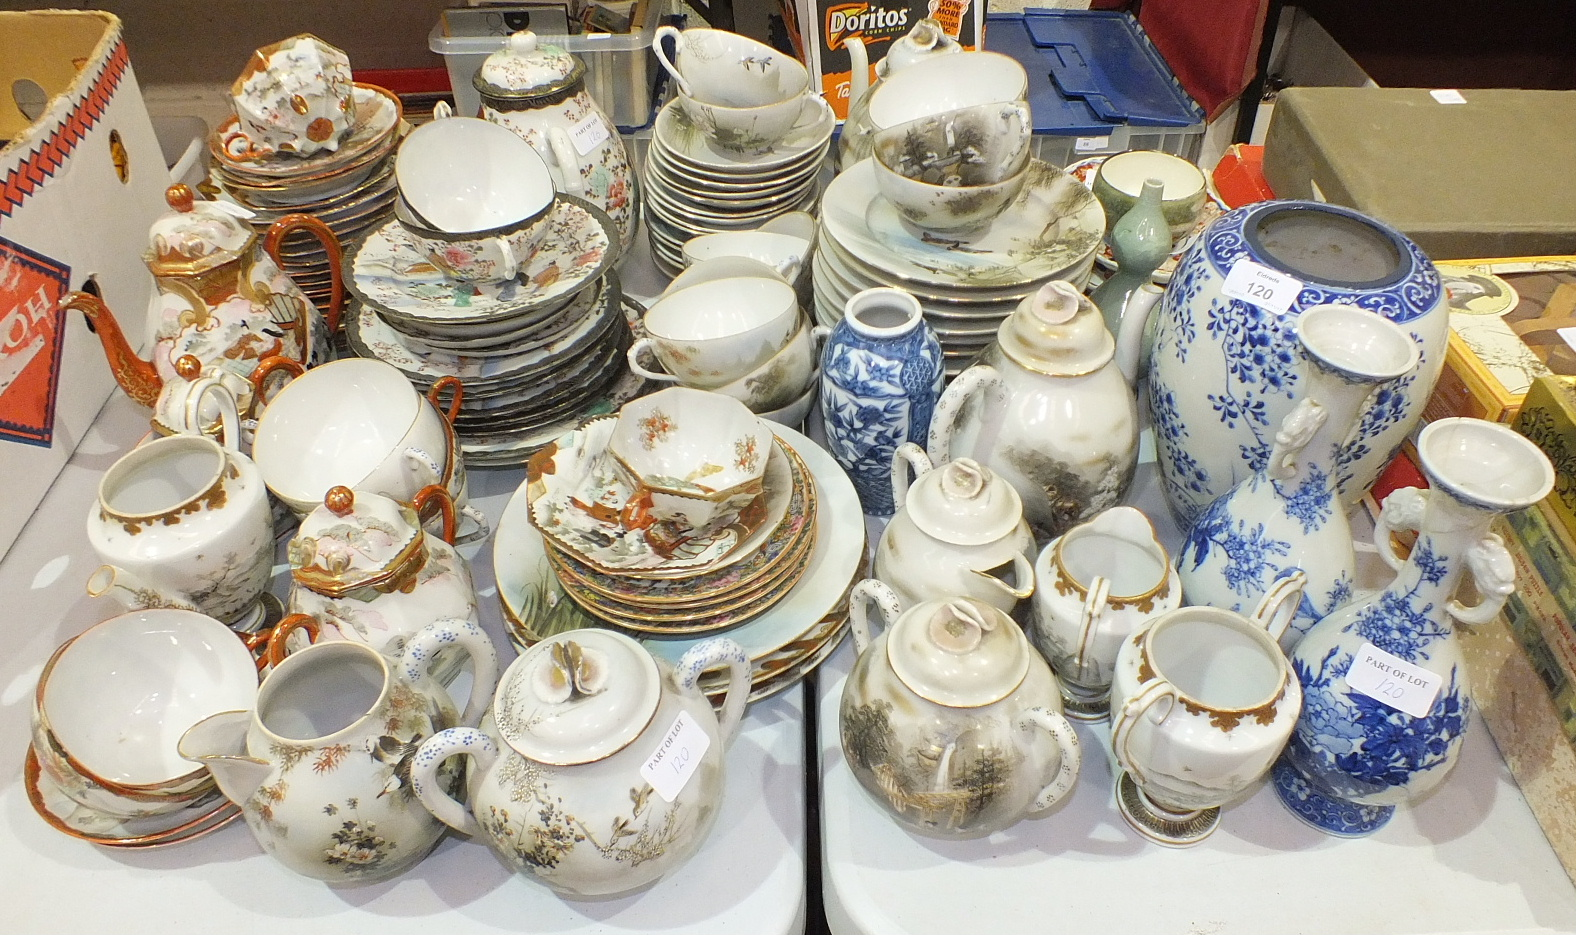 Lot 120 - A large collection of Japanese egg-shell tea ware, two small Imari dishes and other Oriental